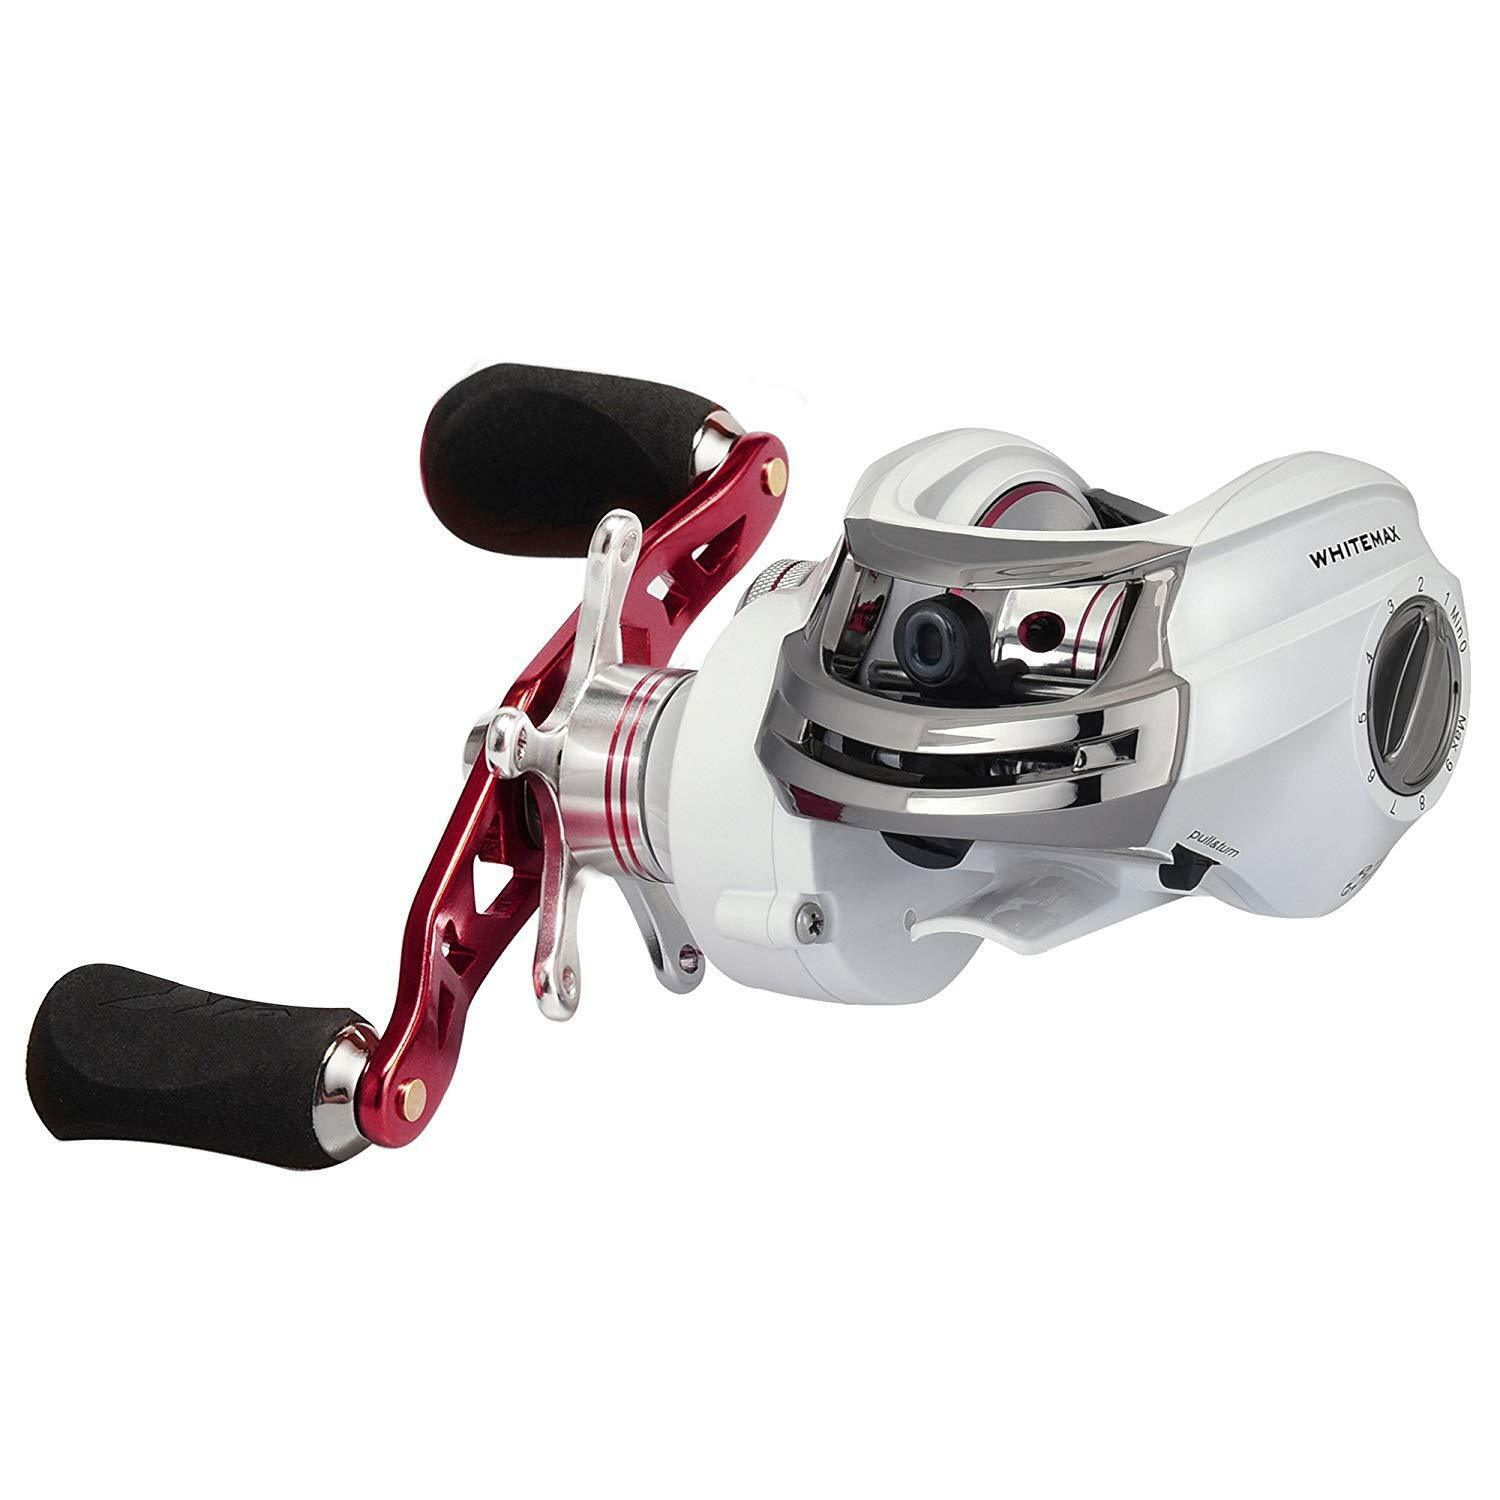 KastKing WhiteMax Baitcasting Reel  Freshwater Fishing Reels - Right-Handed  welcome to buy